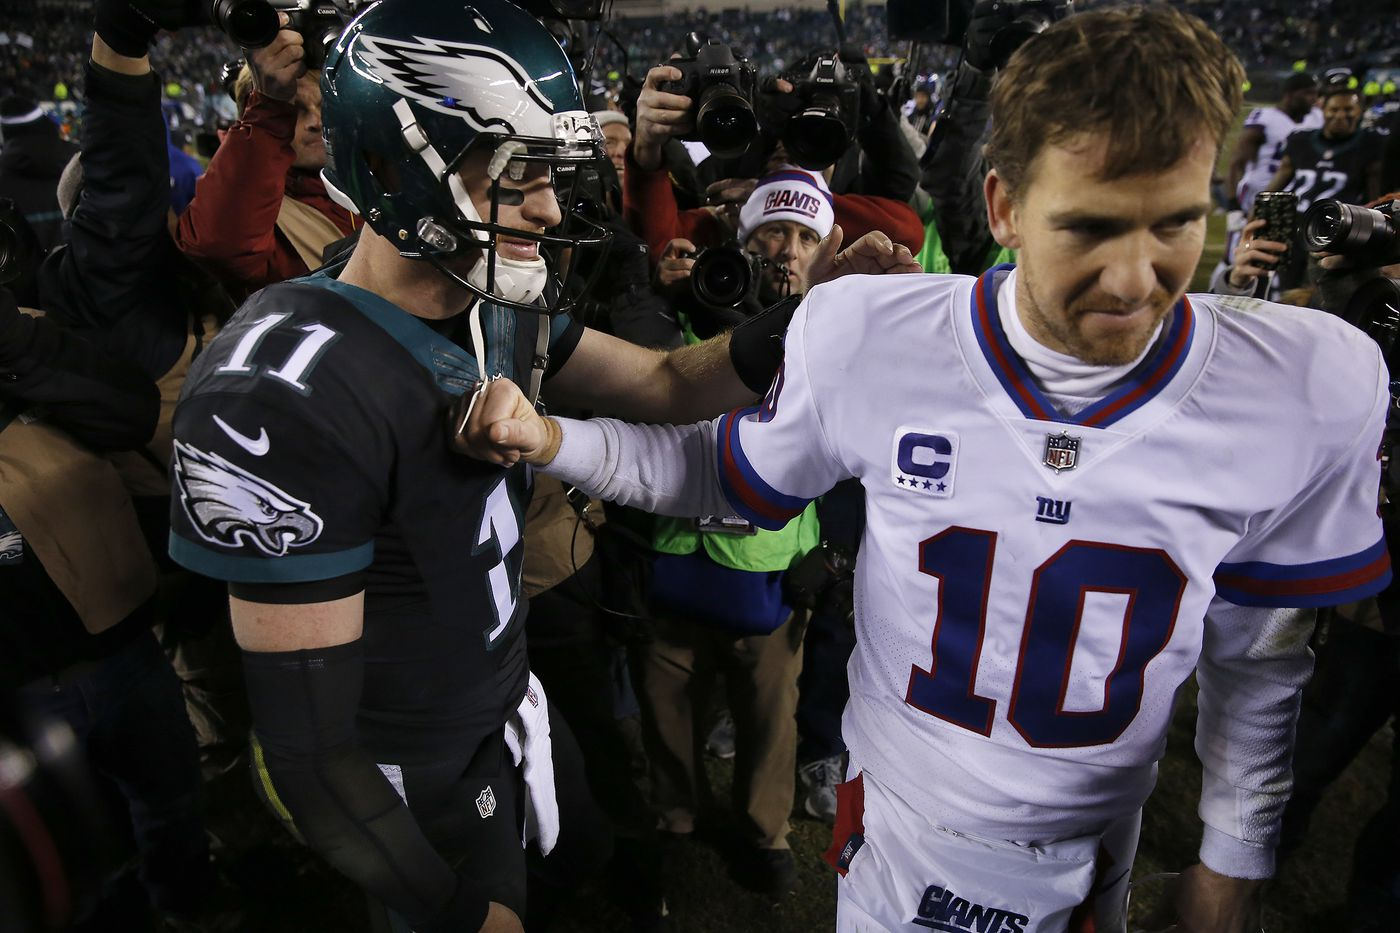 Eagles enter first NFC East game vs. Giants knowing division is 'still right there to be had'